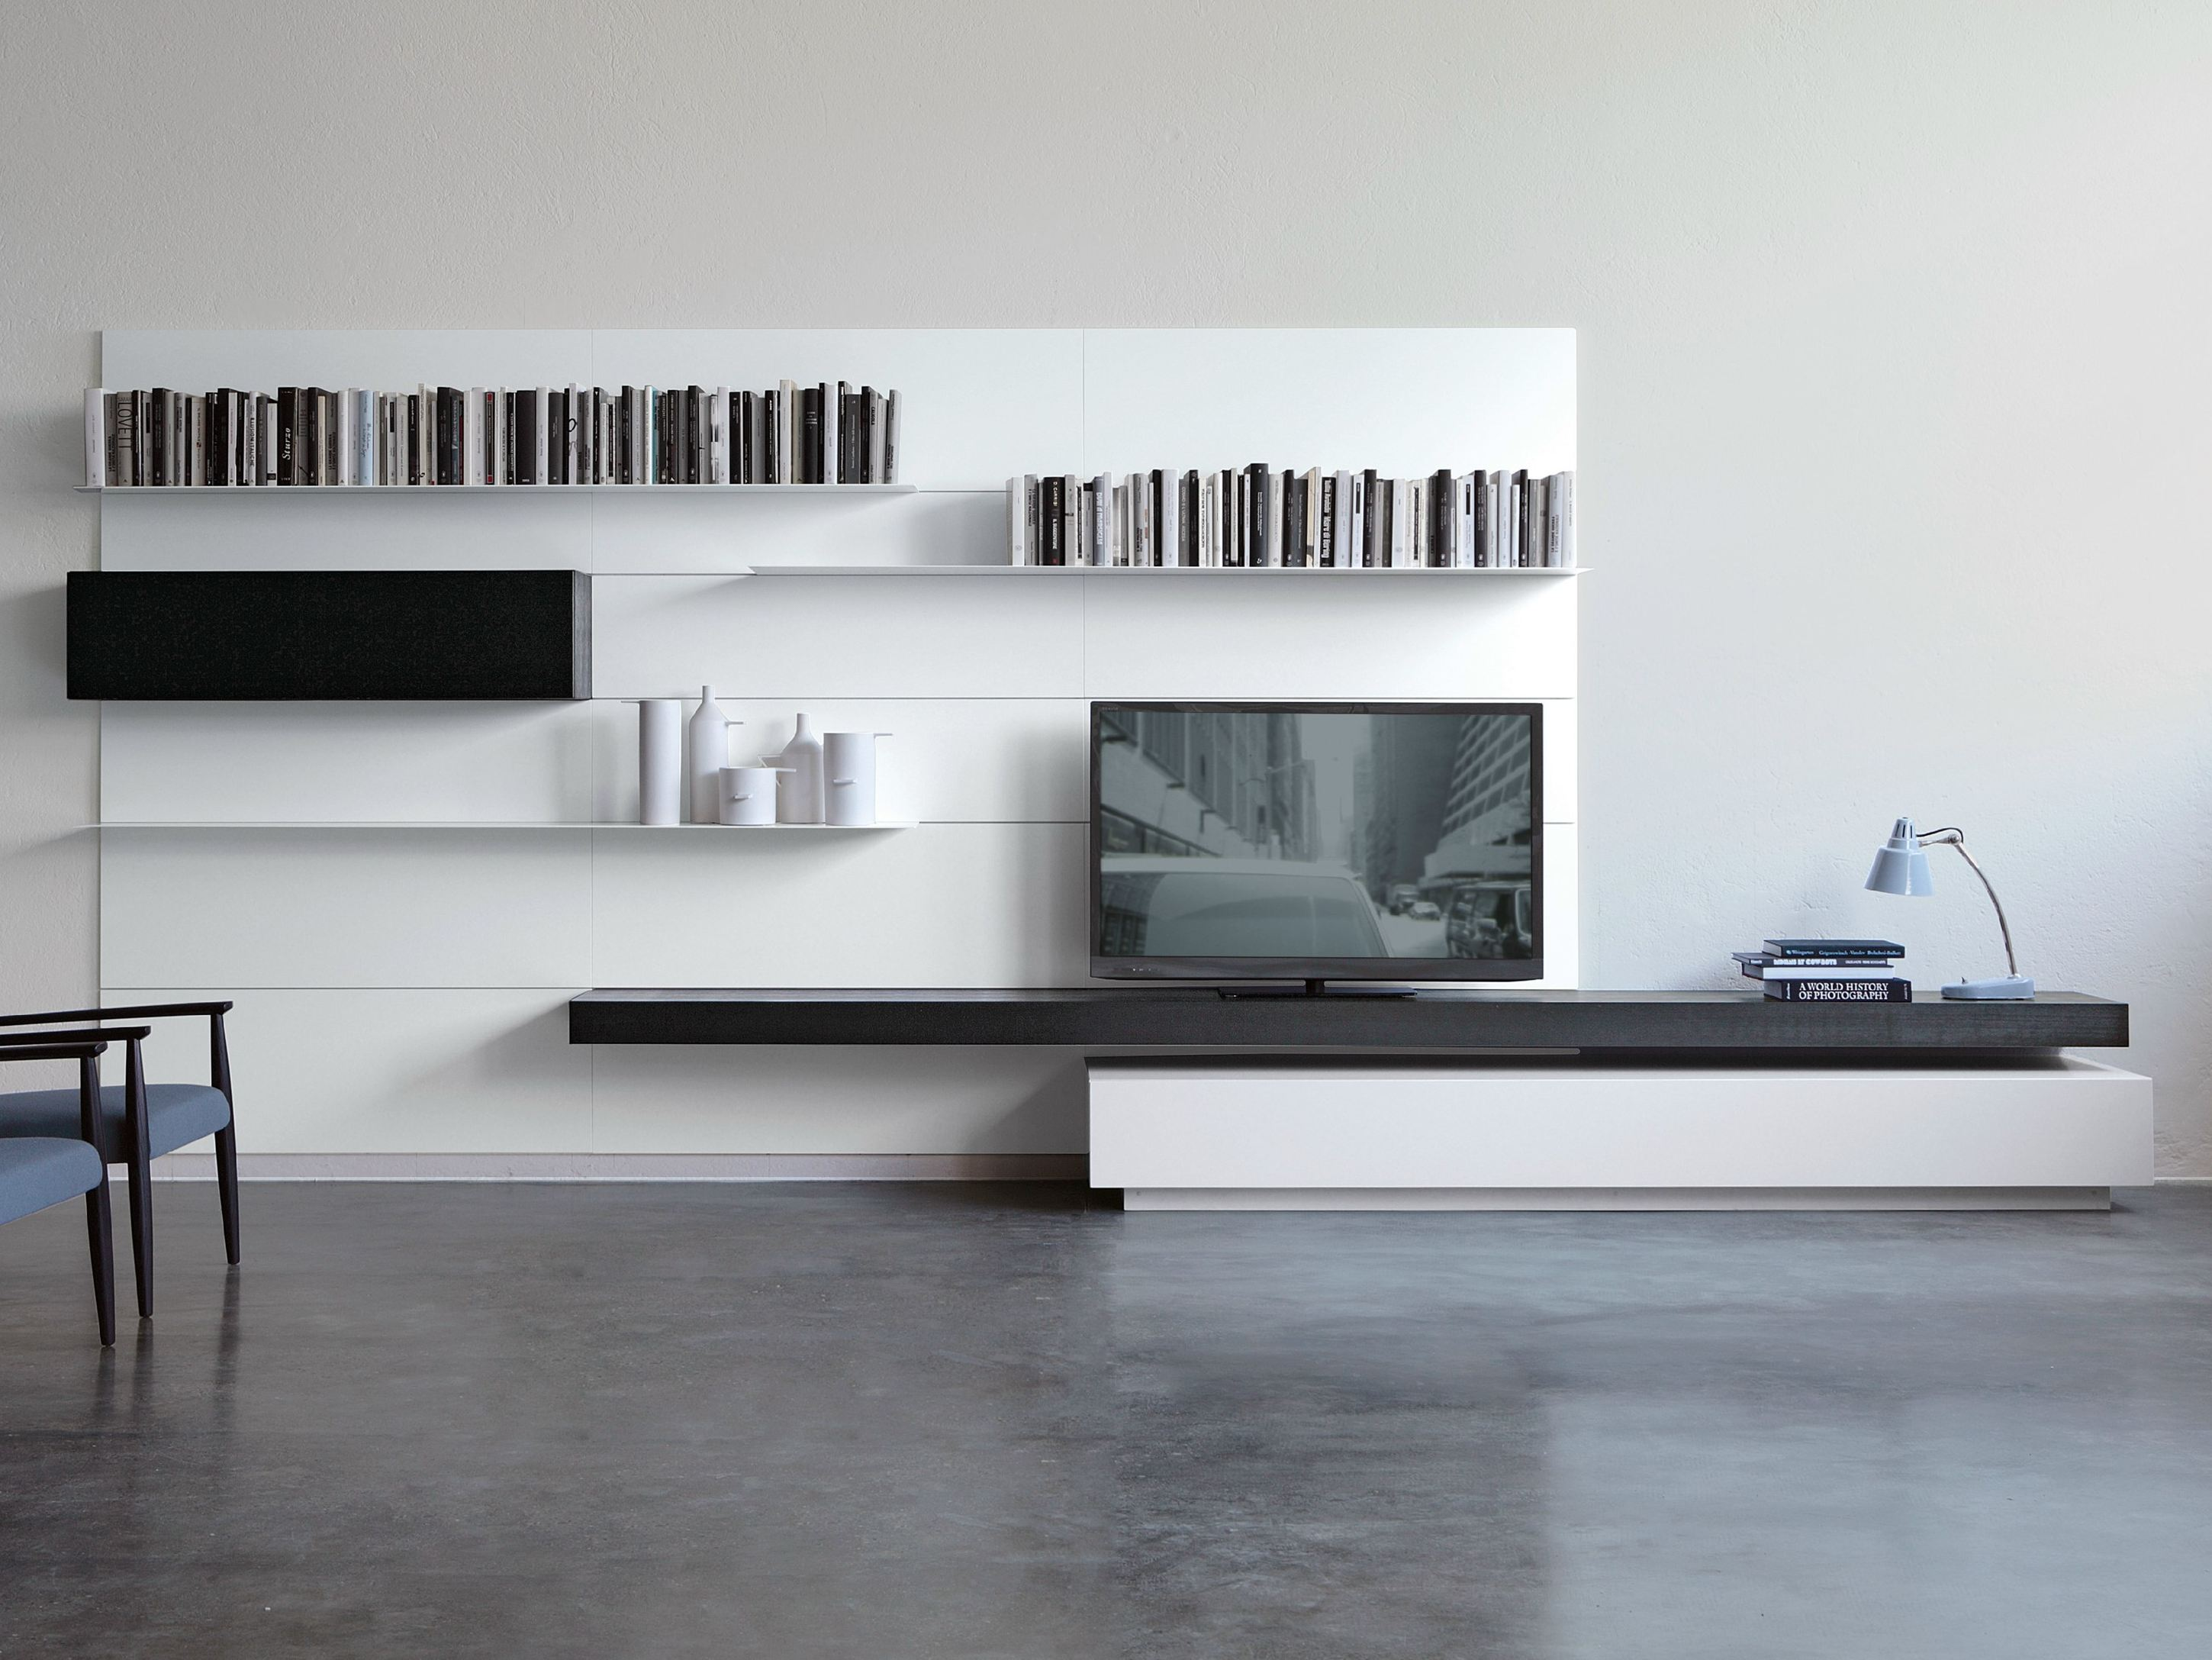 Mueble modular de pared montaje pared load it by porro for Porro muebles